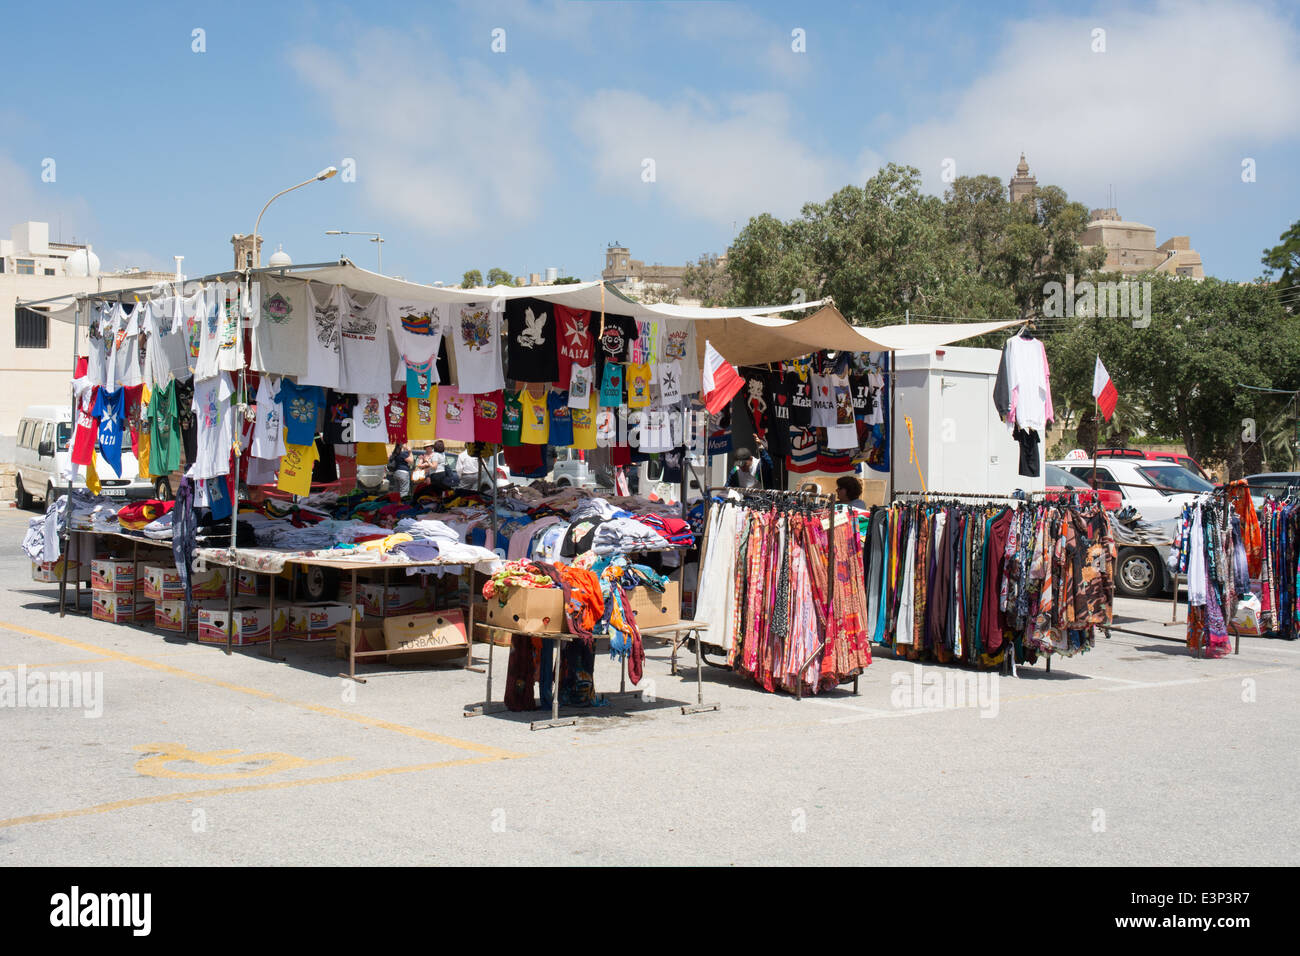 A market stall awaits tourists when they alight from there tour coach at Rabat on the Maltese Island of Gozo. - Stock Image